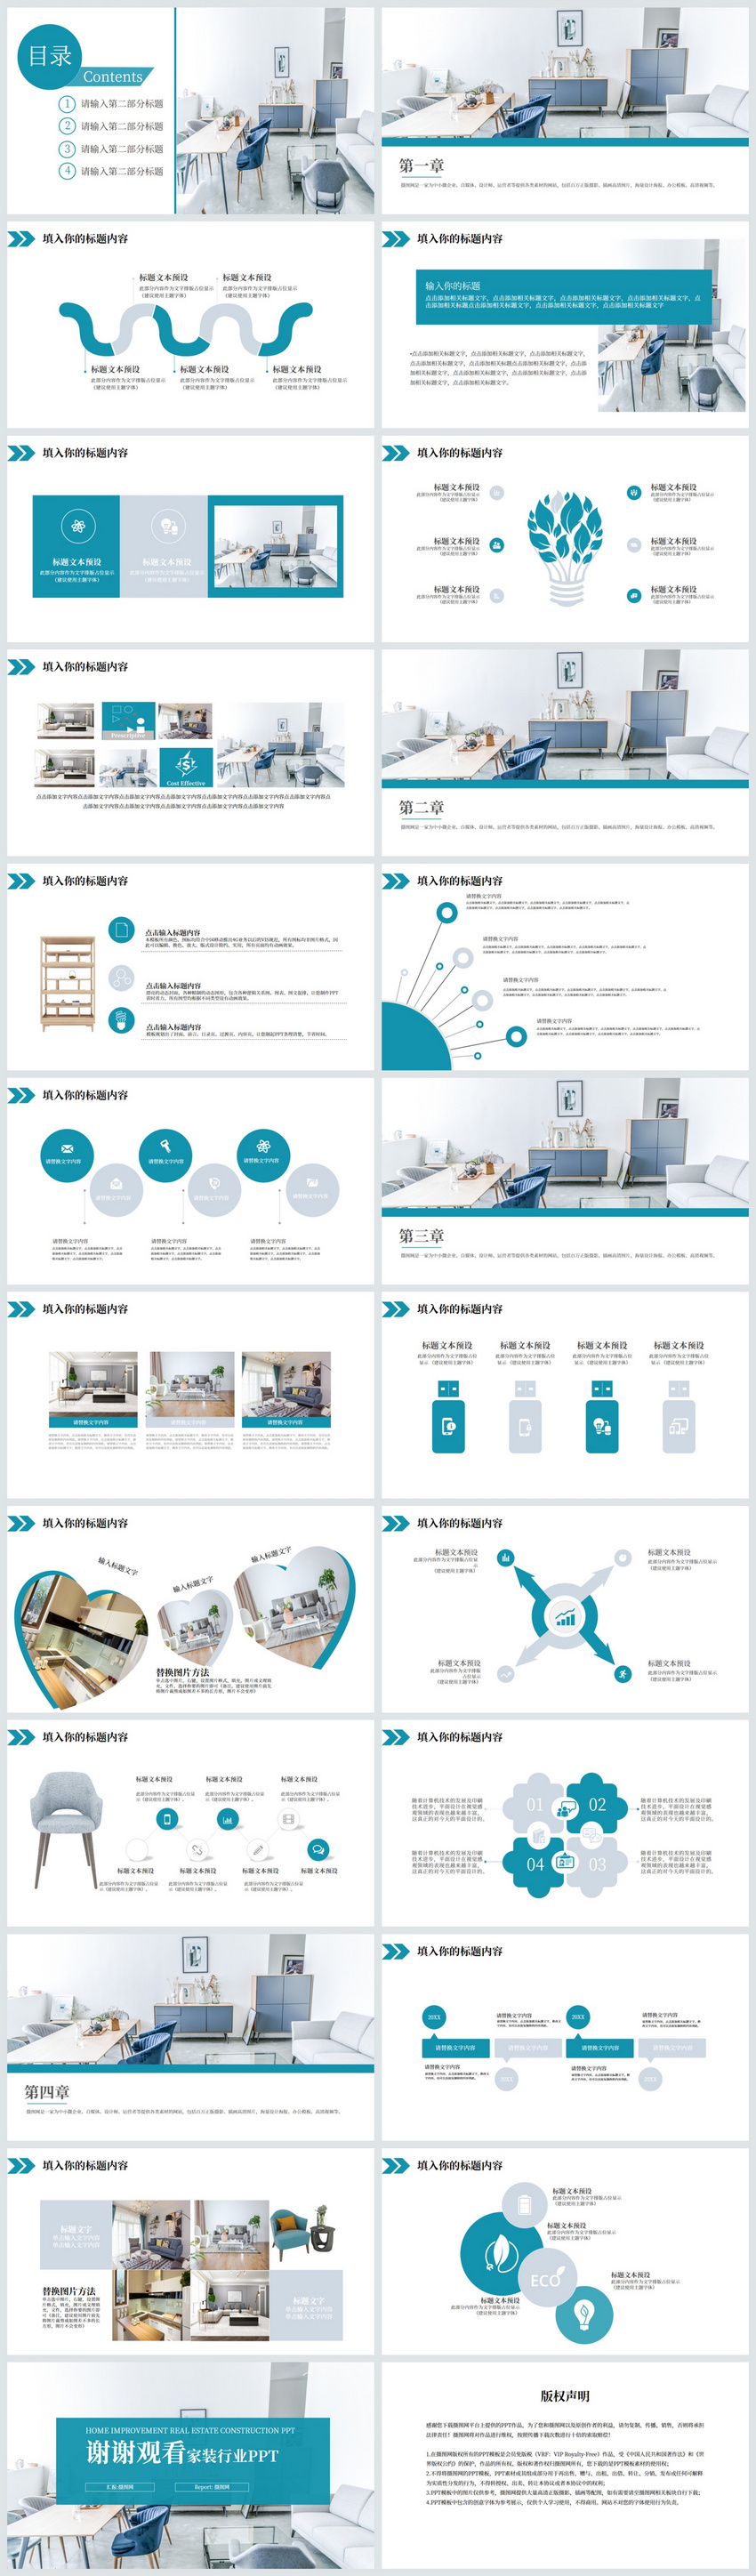 Home Interior Design Renovation Ppt Template Powerpoint Templete Ppt Free Download 401452078 Lovepik Com